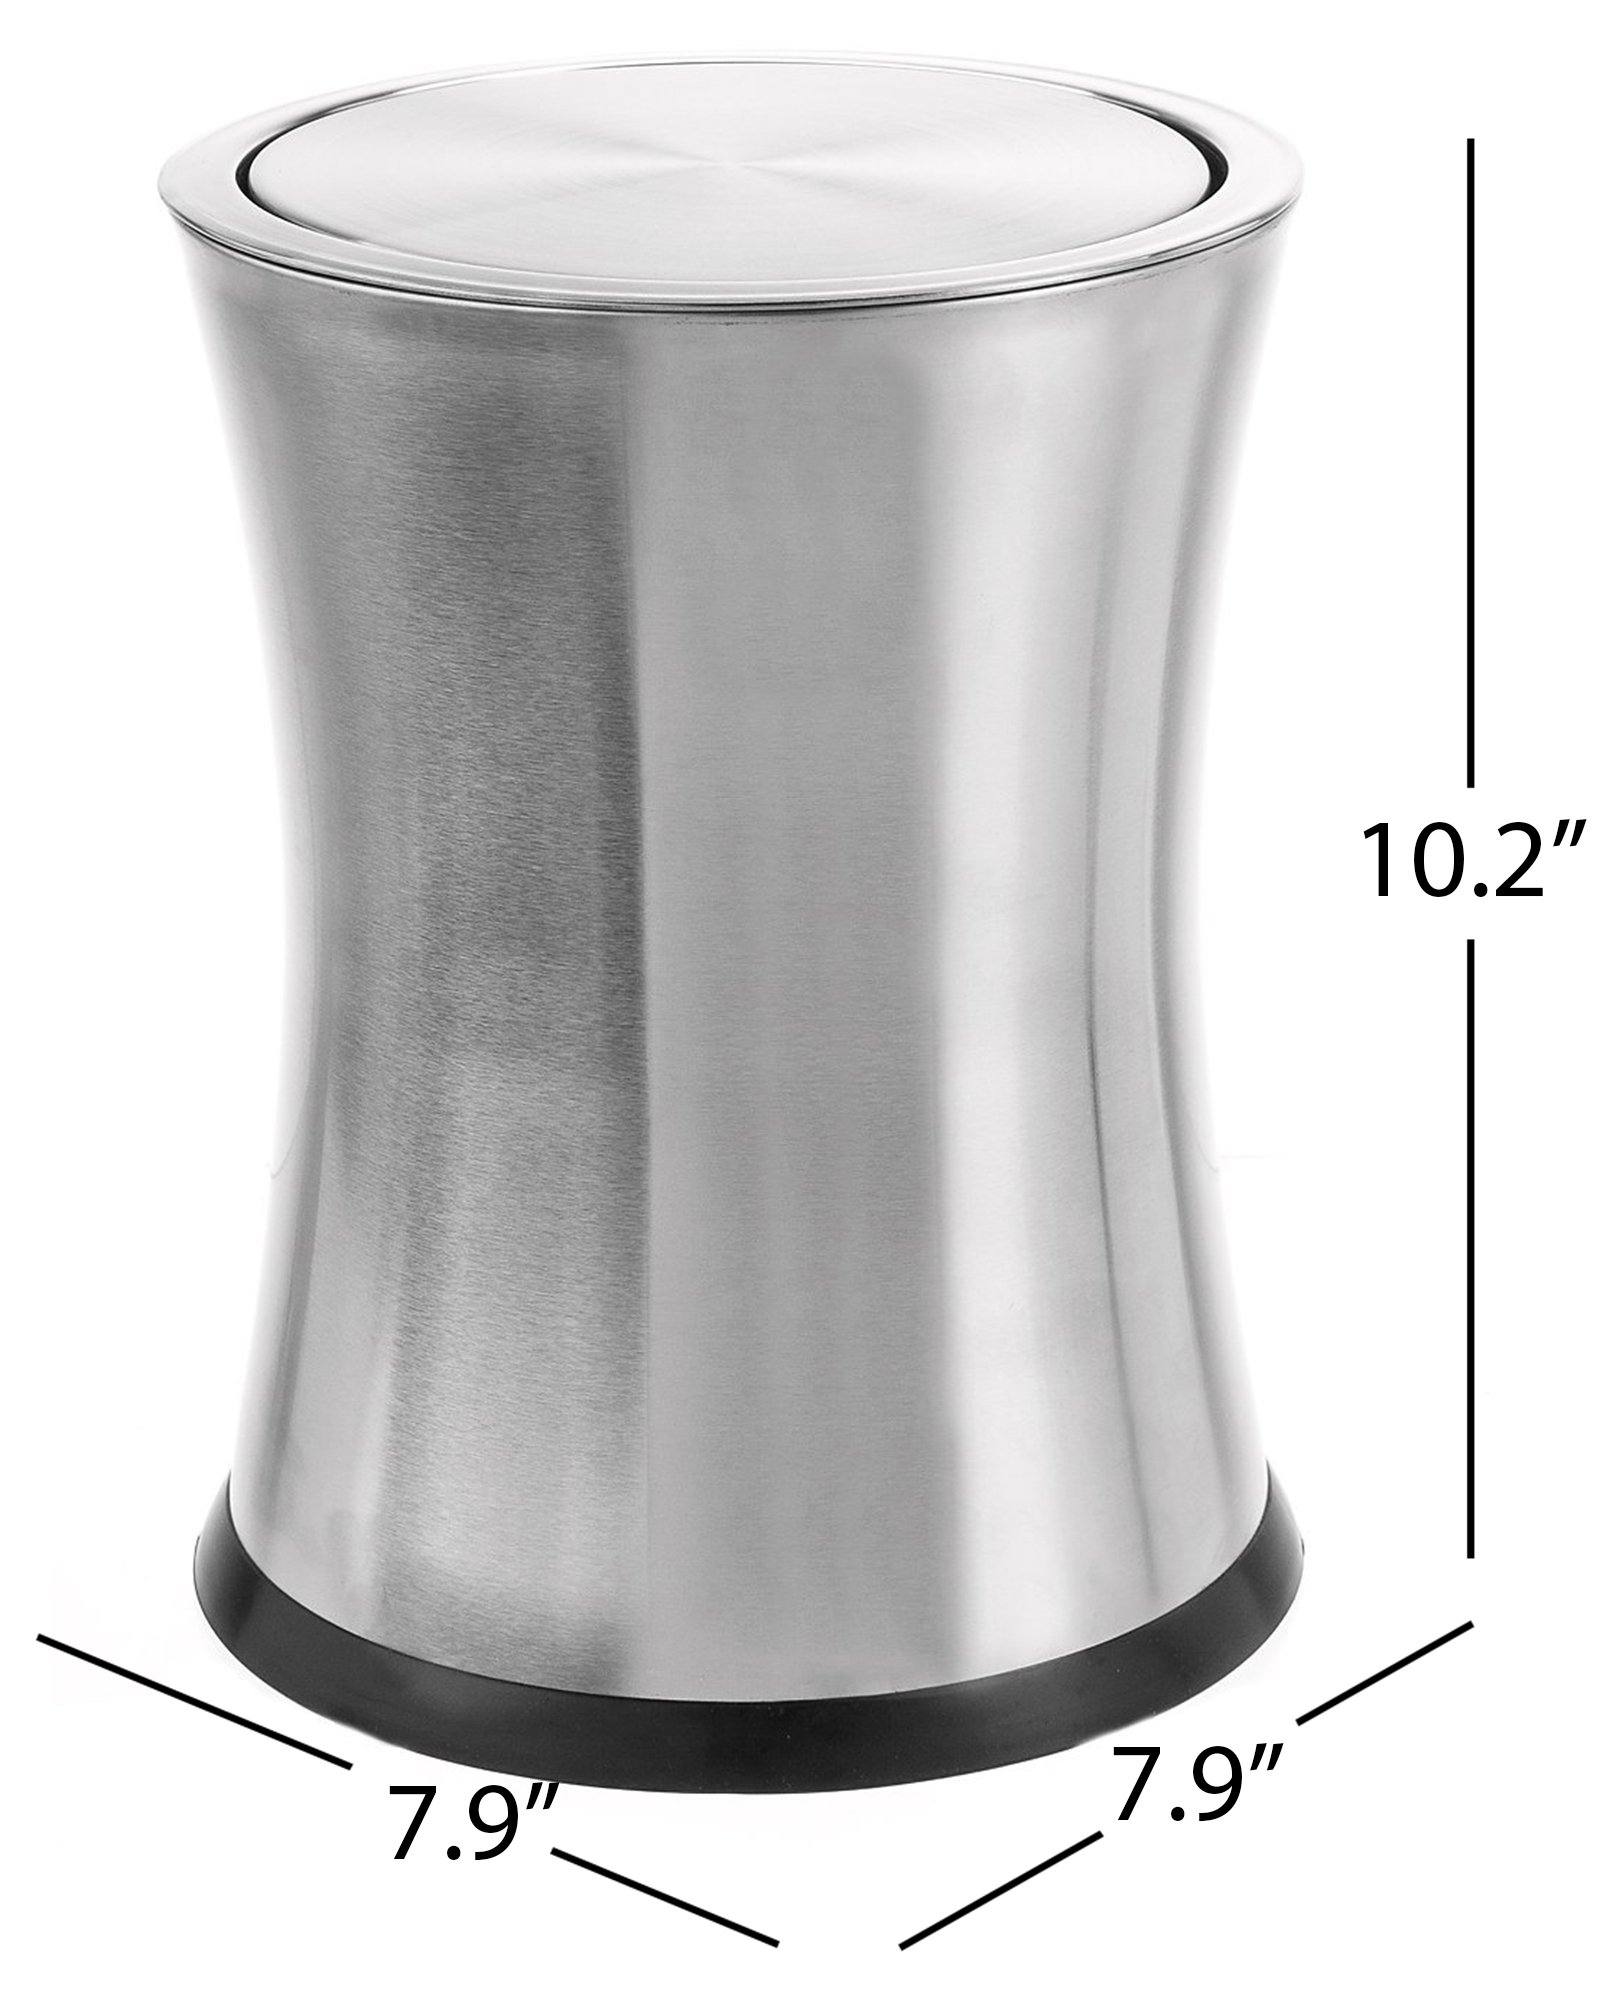 Bennett ''Swivel-A-Lid'' Small Trash Can, Stainless Steel Attractive 'Center-Inset' Designed Wastebasket, Modern Home Décor, Round Shape (Silver)